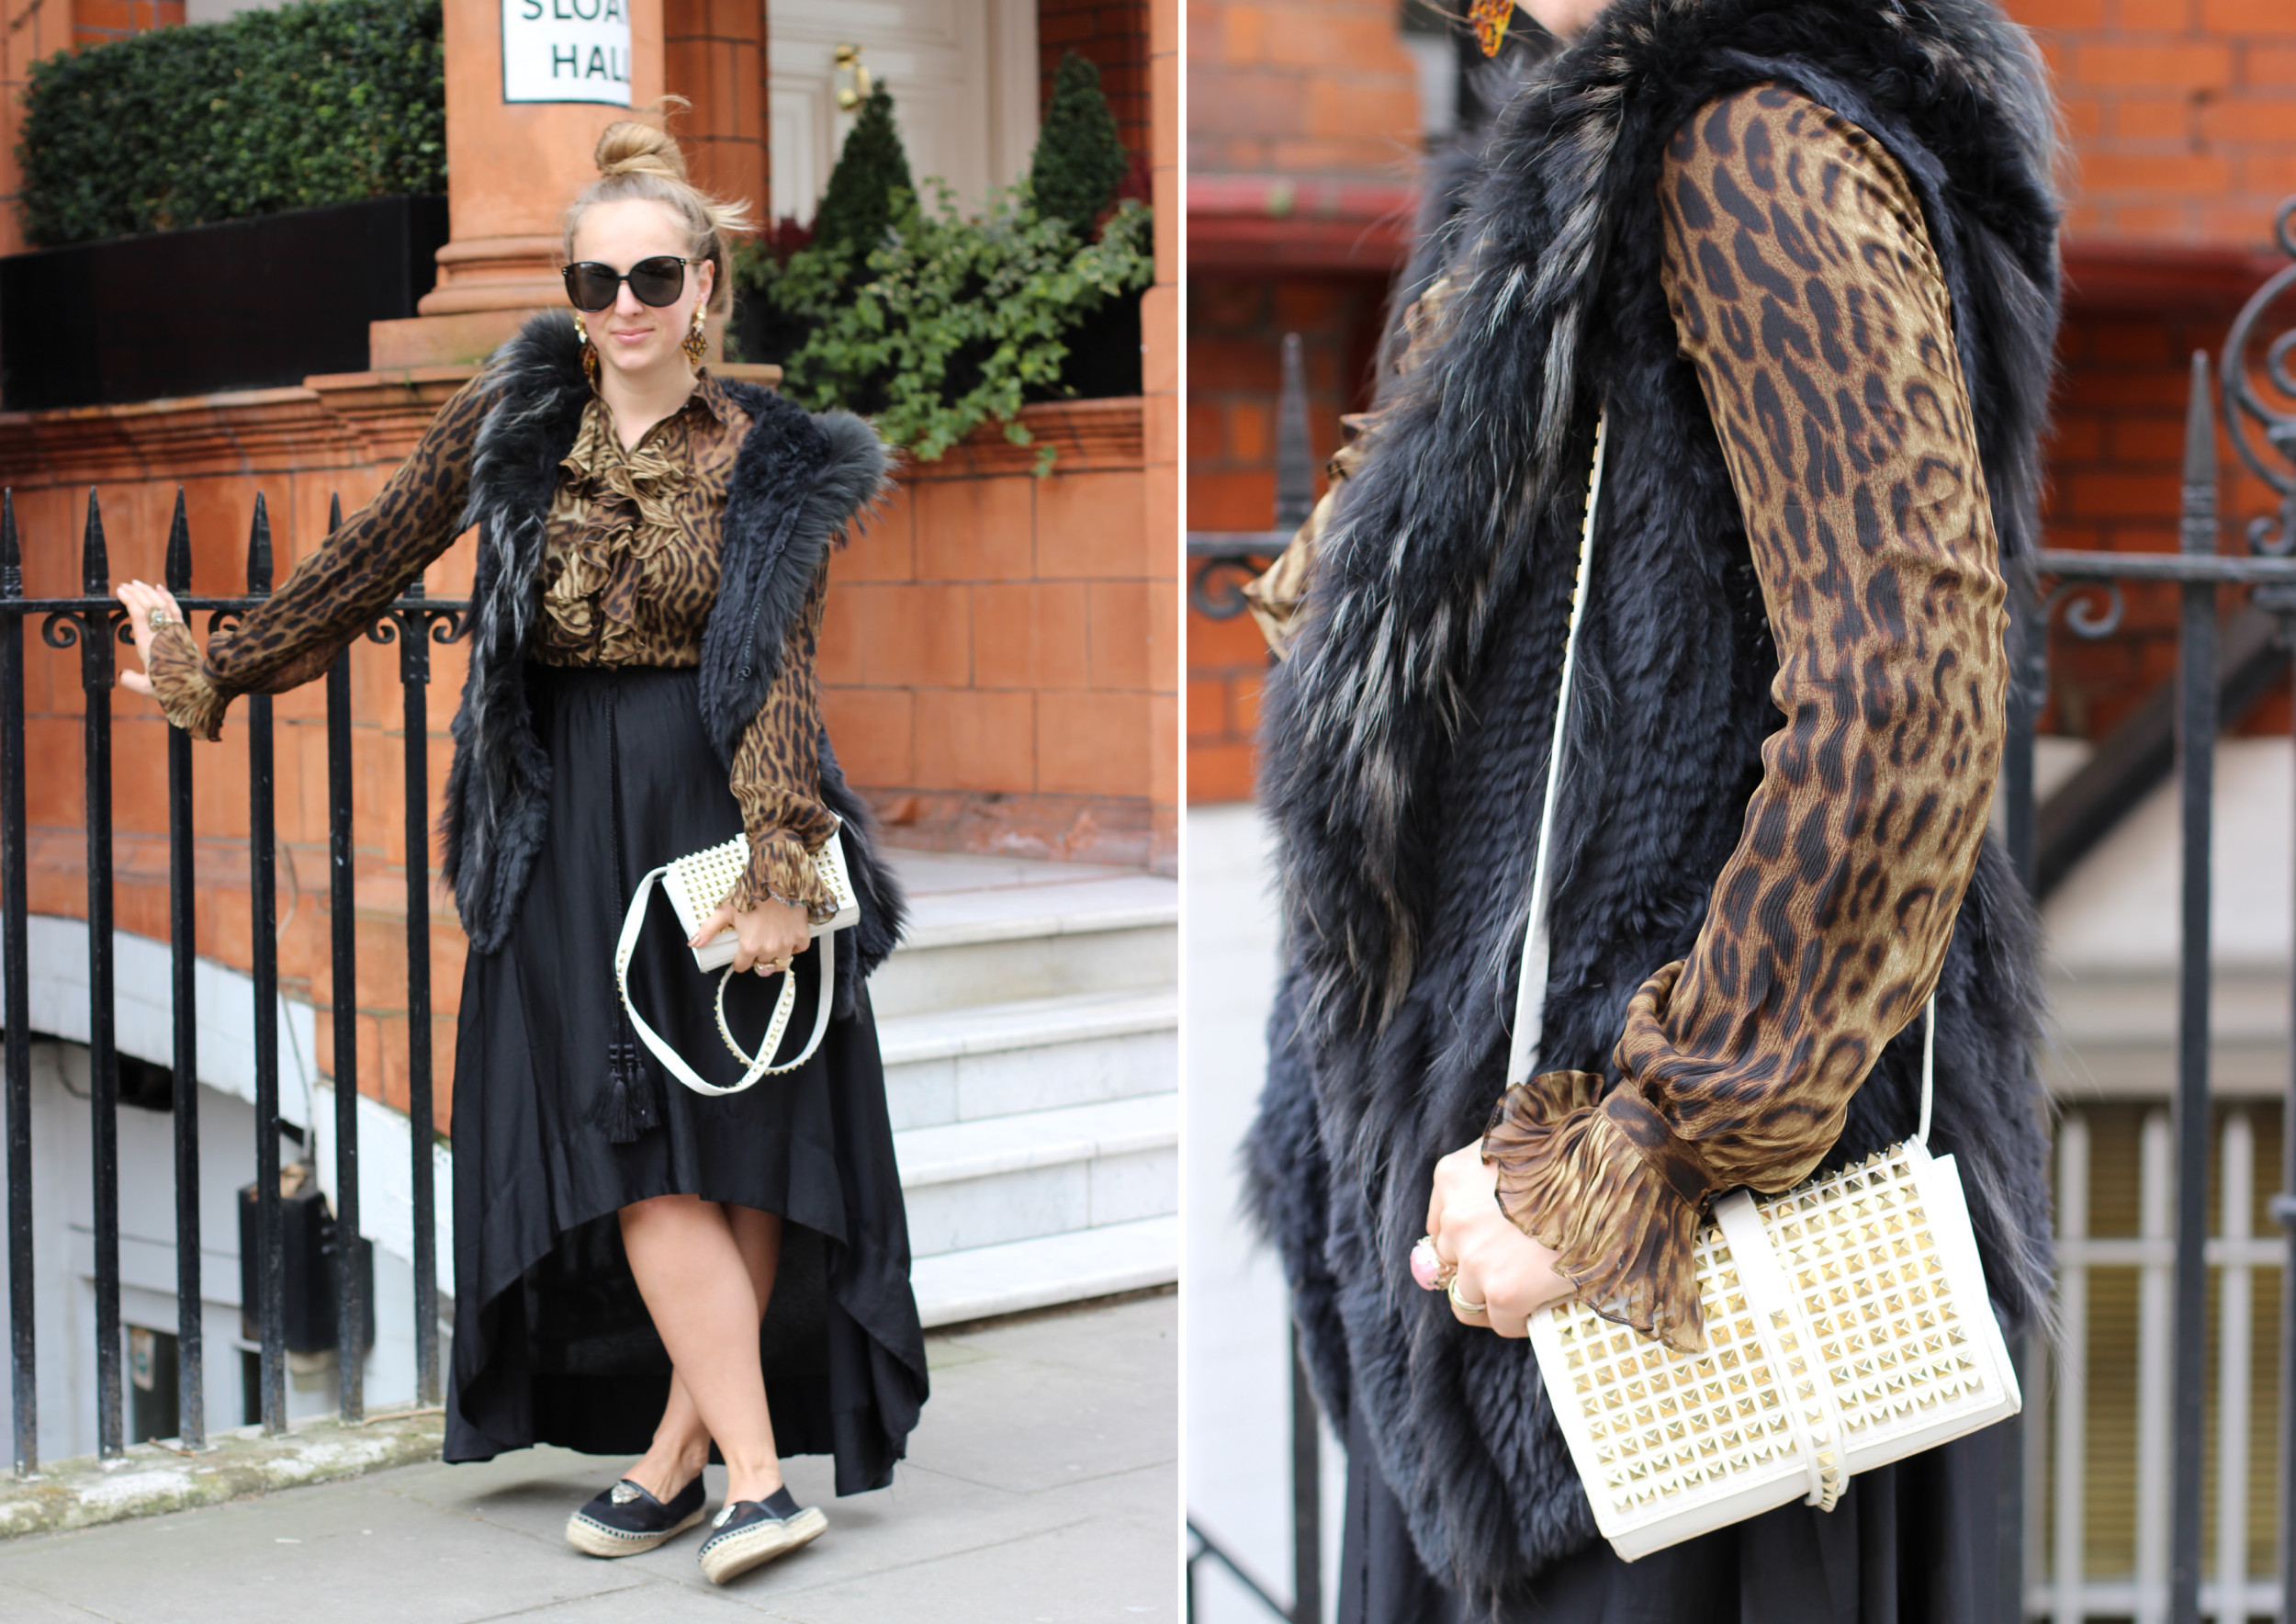 Vanessa Fur Leo Outfit 4